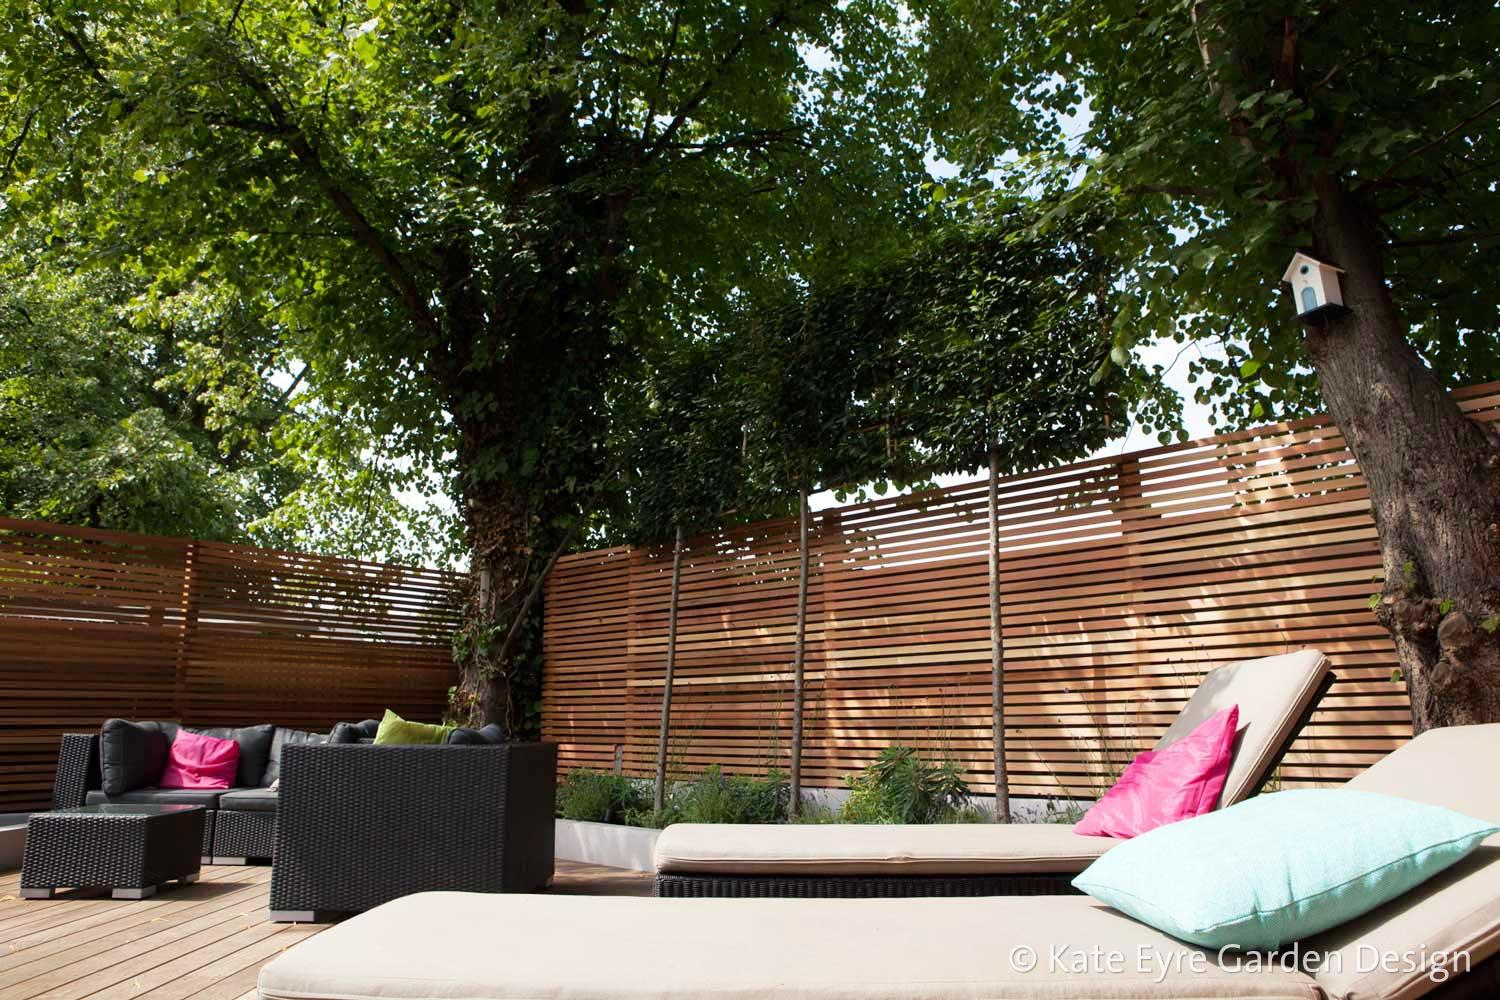 Medium back garden design in Drewstead Road, Streatham, 3